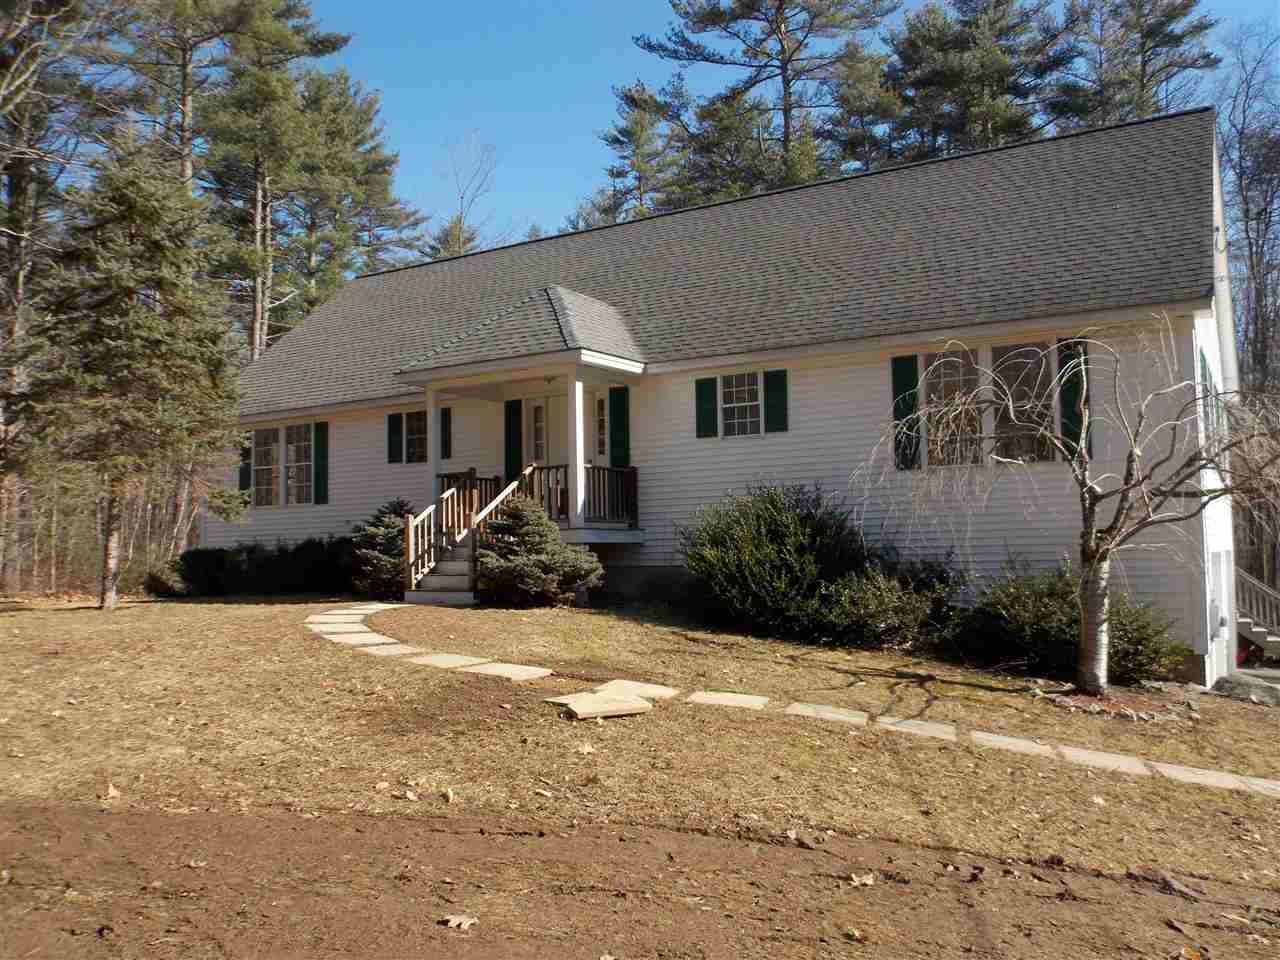 Lee                                                NH Real Estate Property Photo